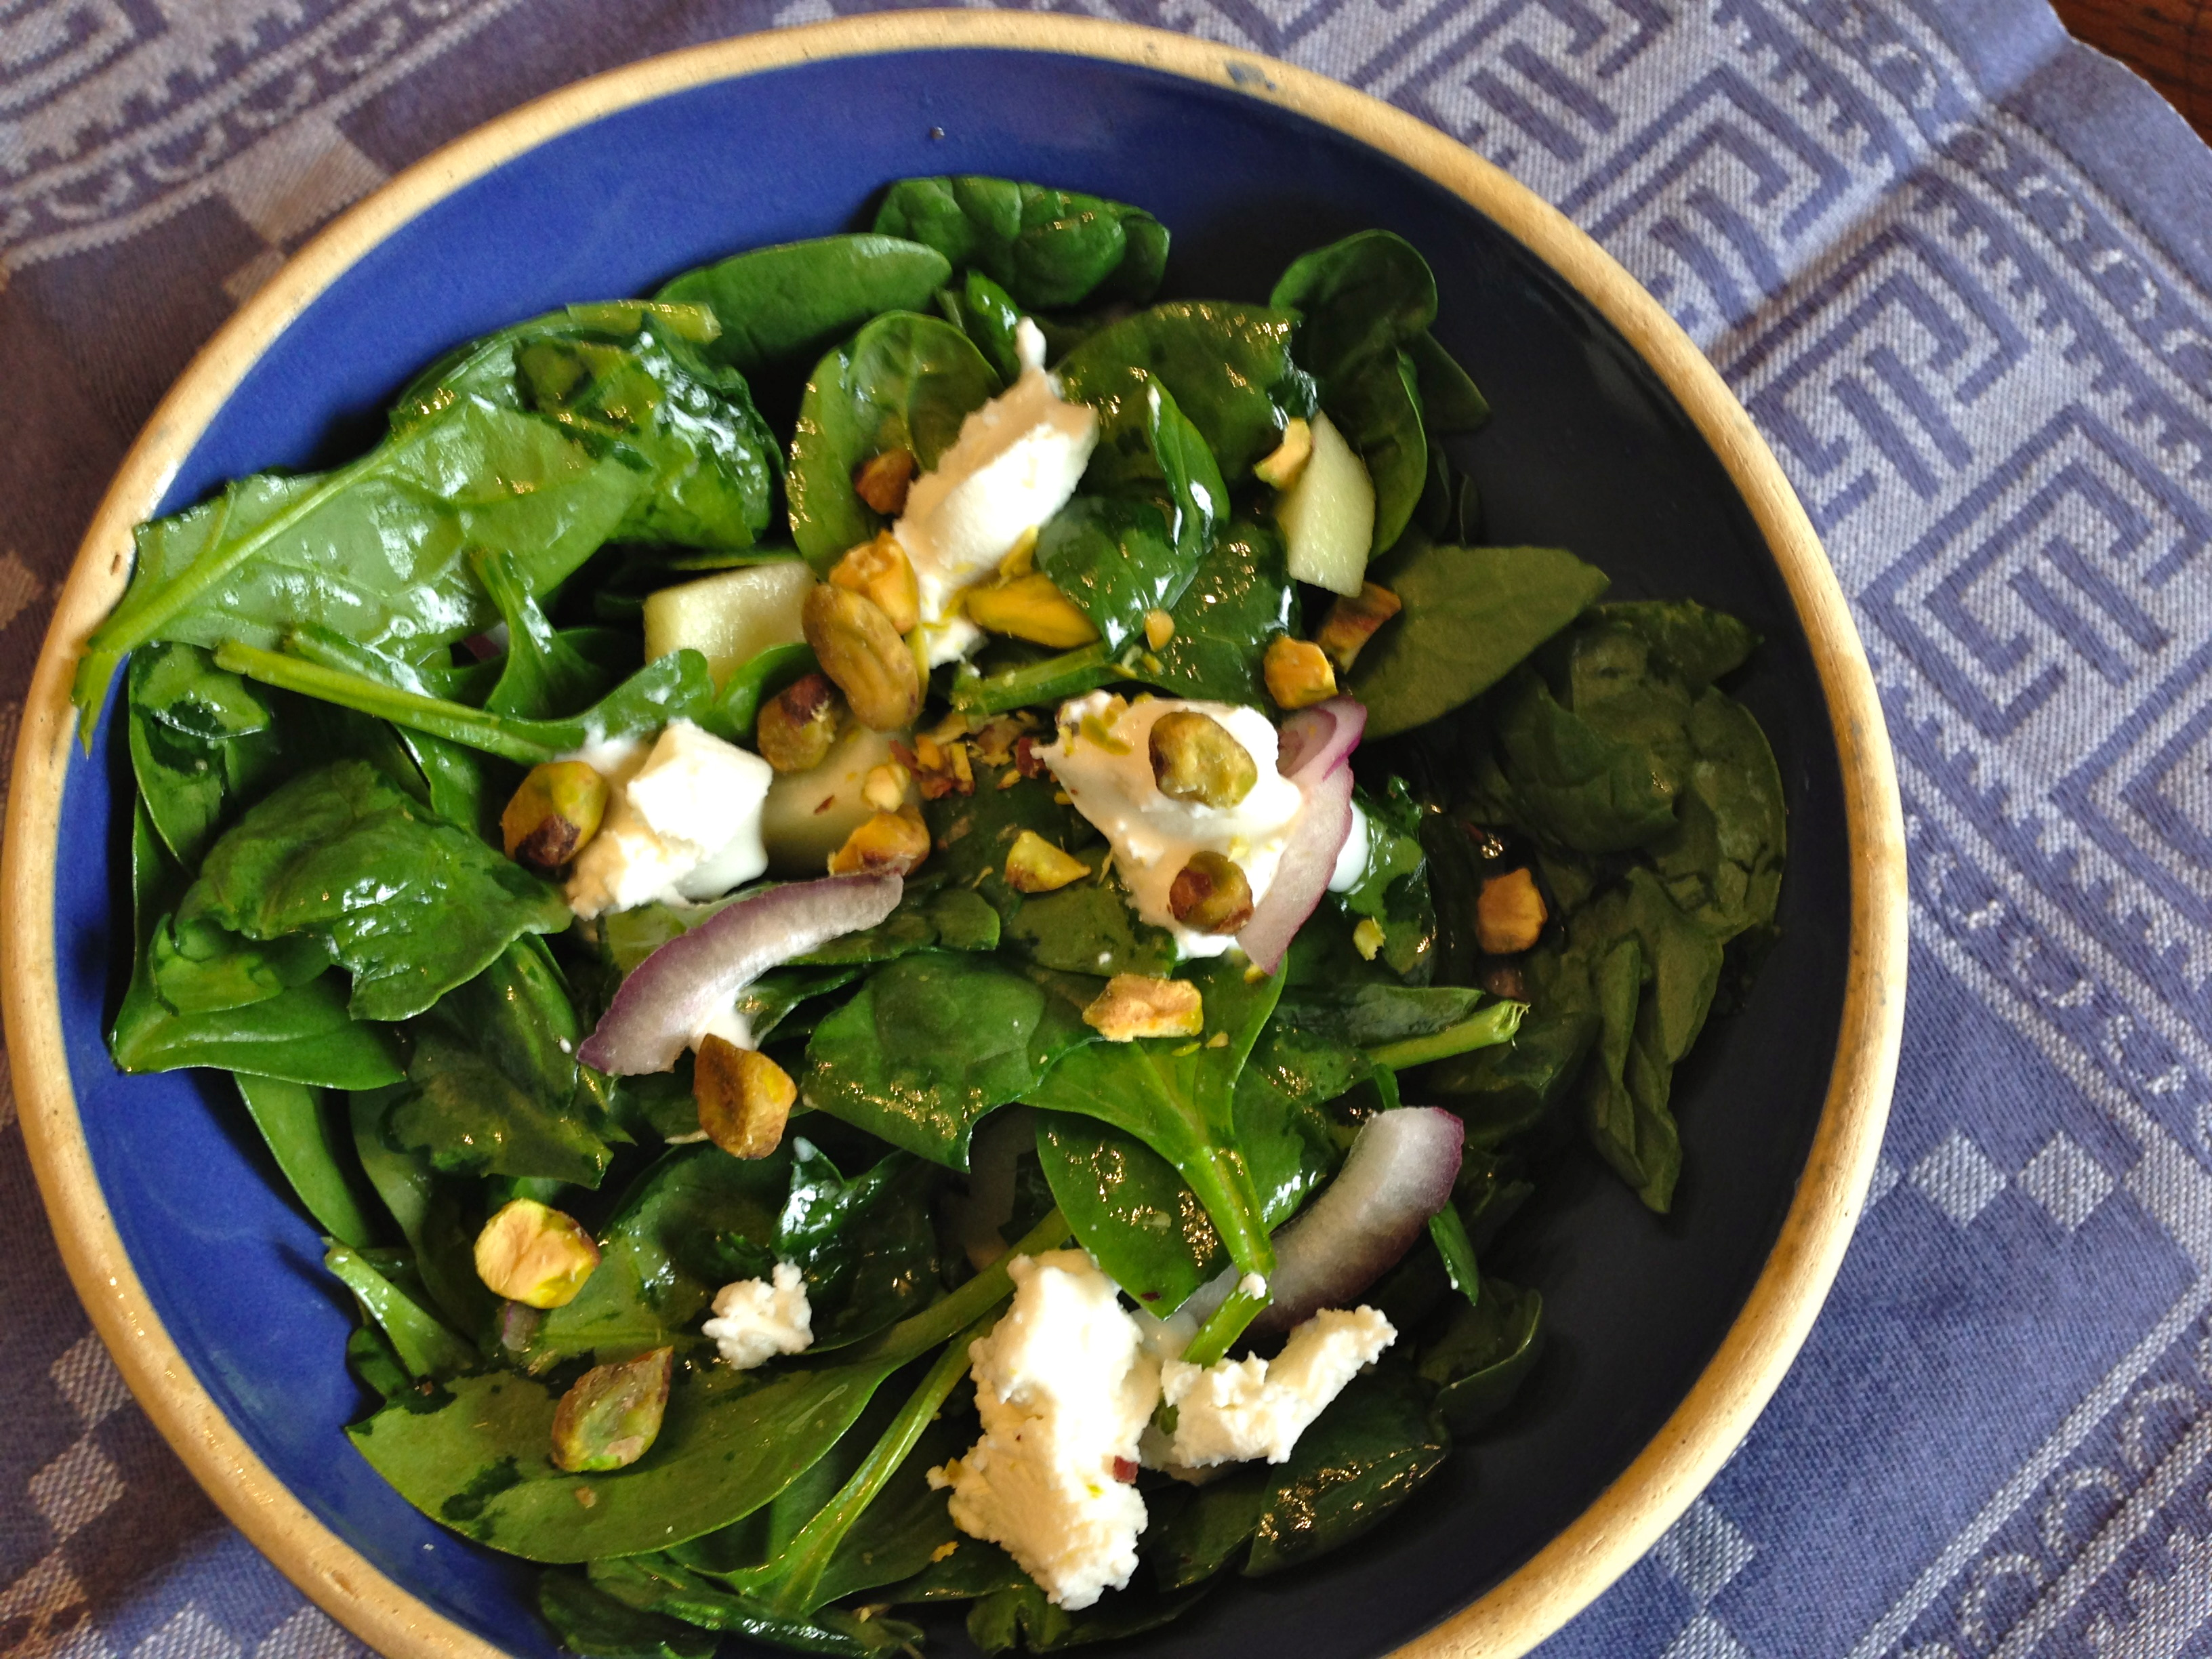 Maple Vinaigrette & Goat Cheese Salad